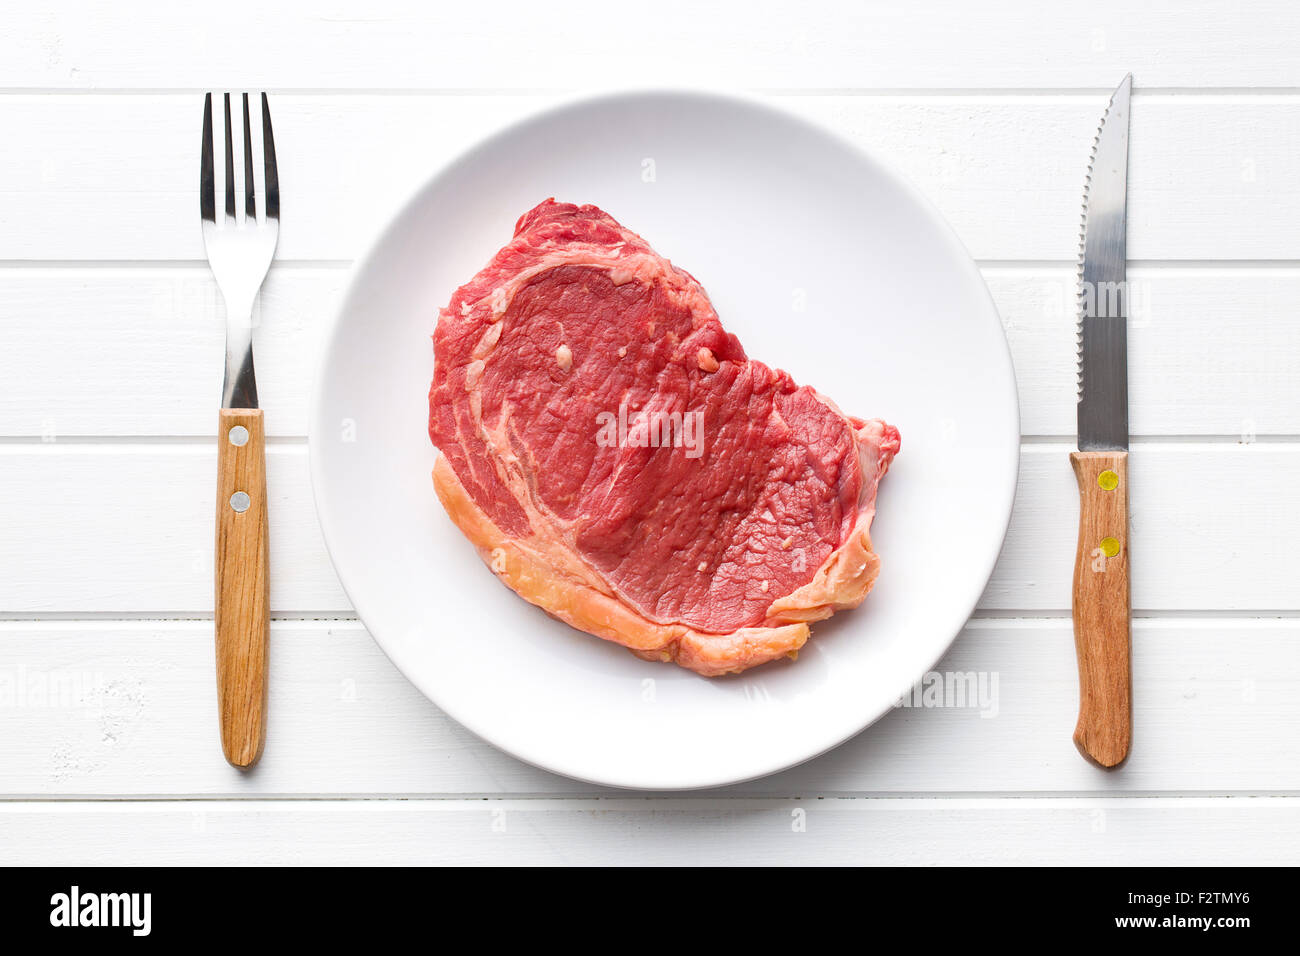 fresh raw beef on plate - Stock Image